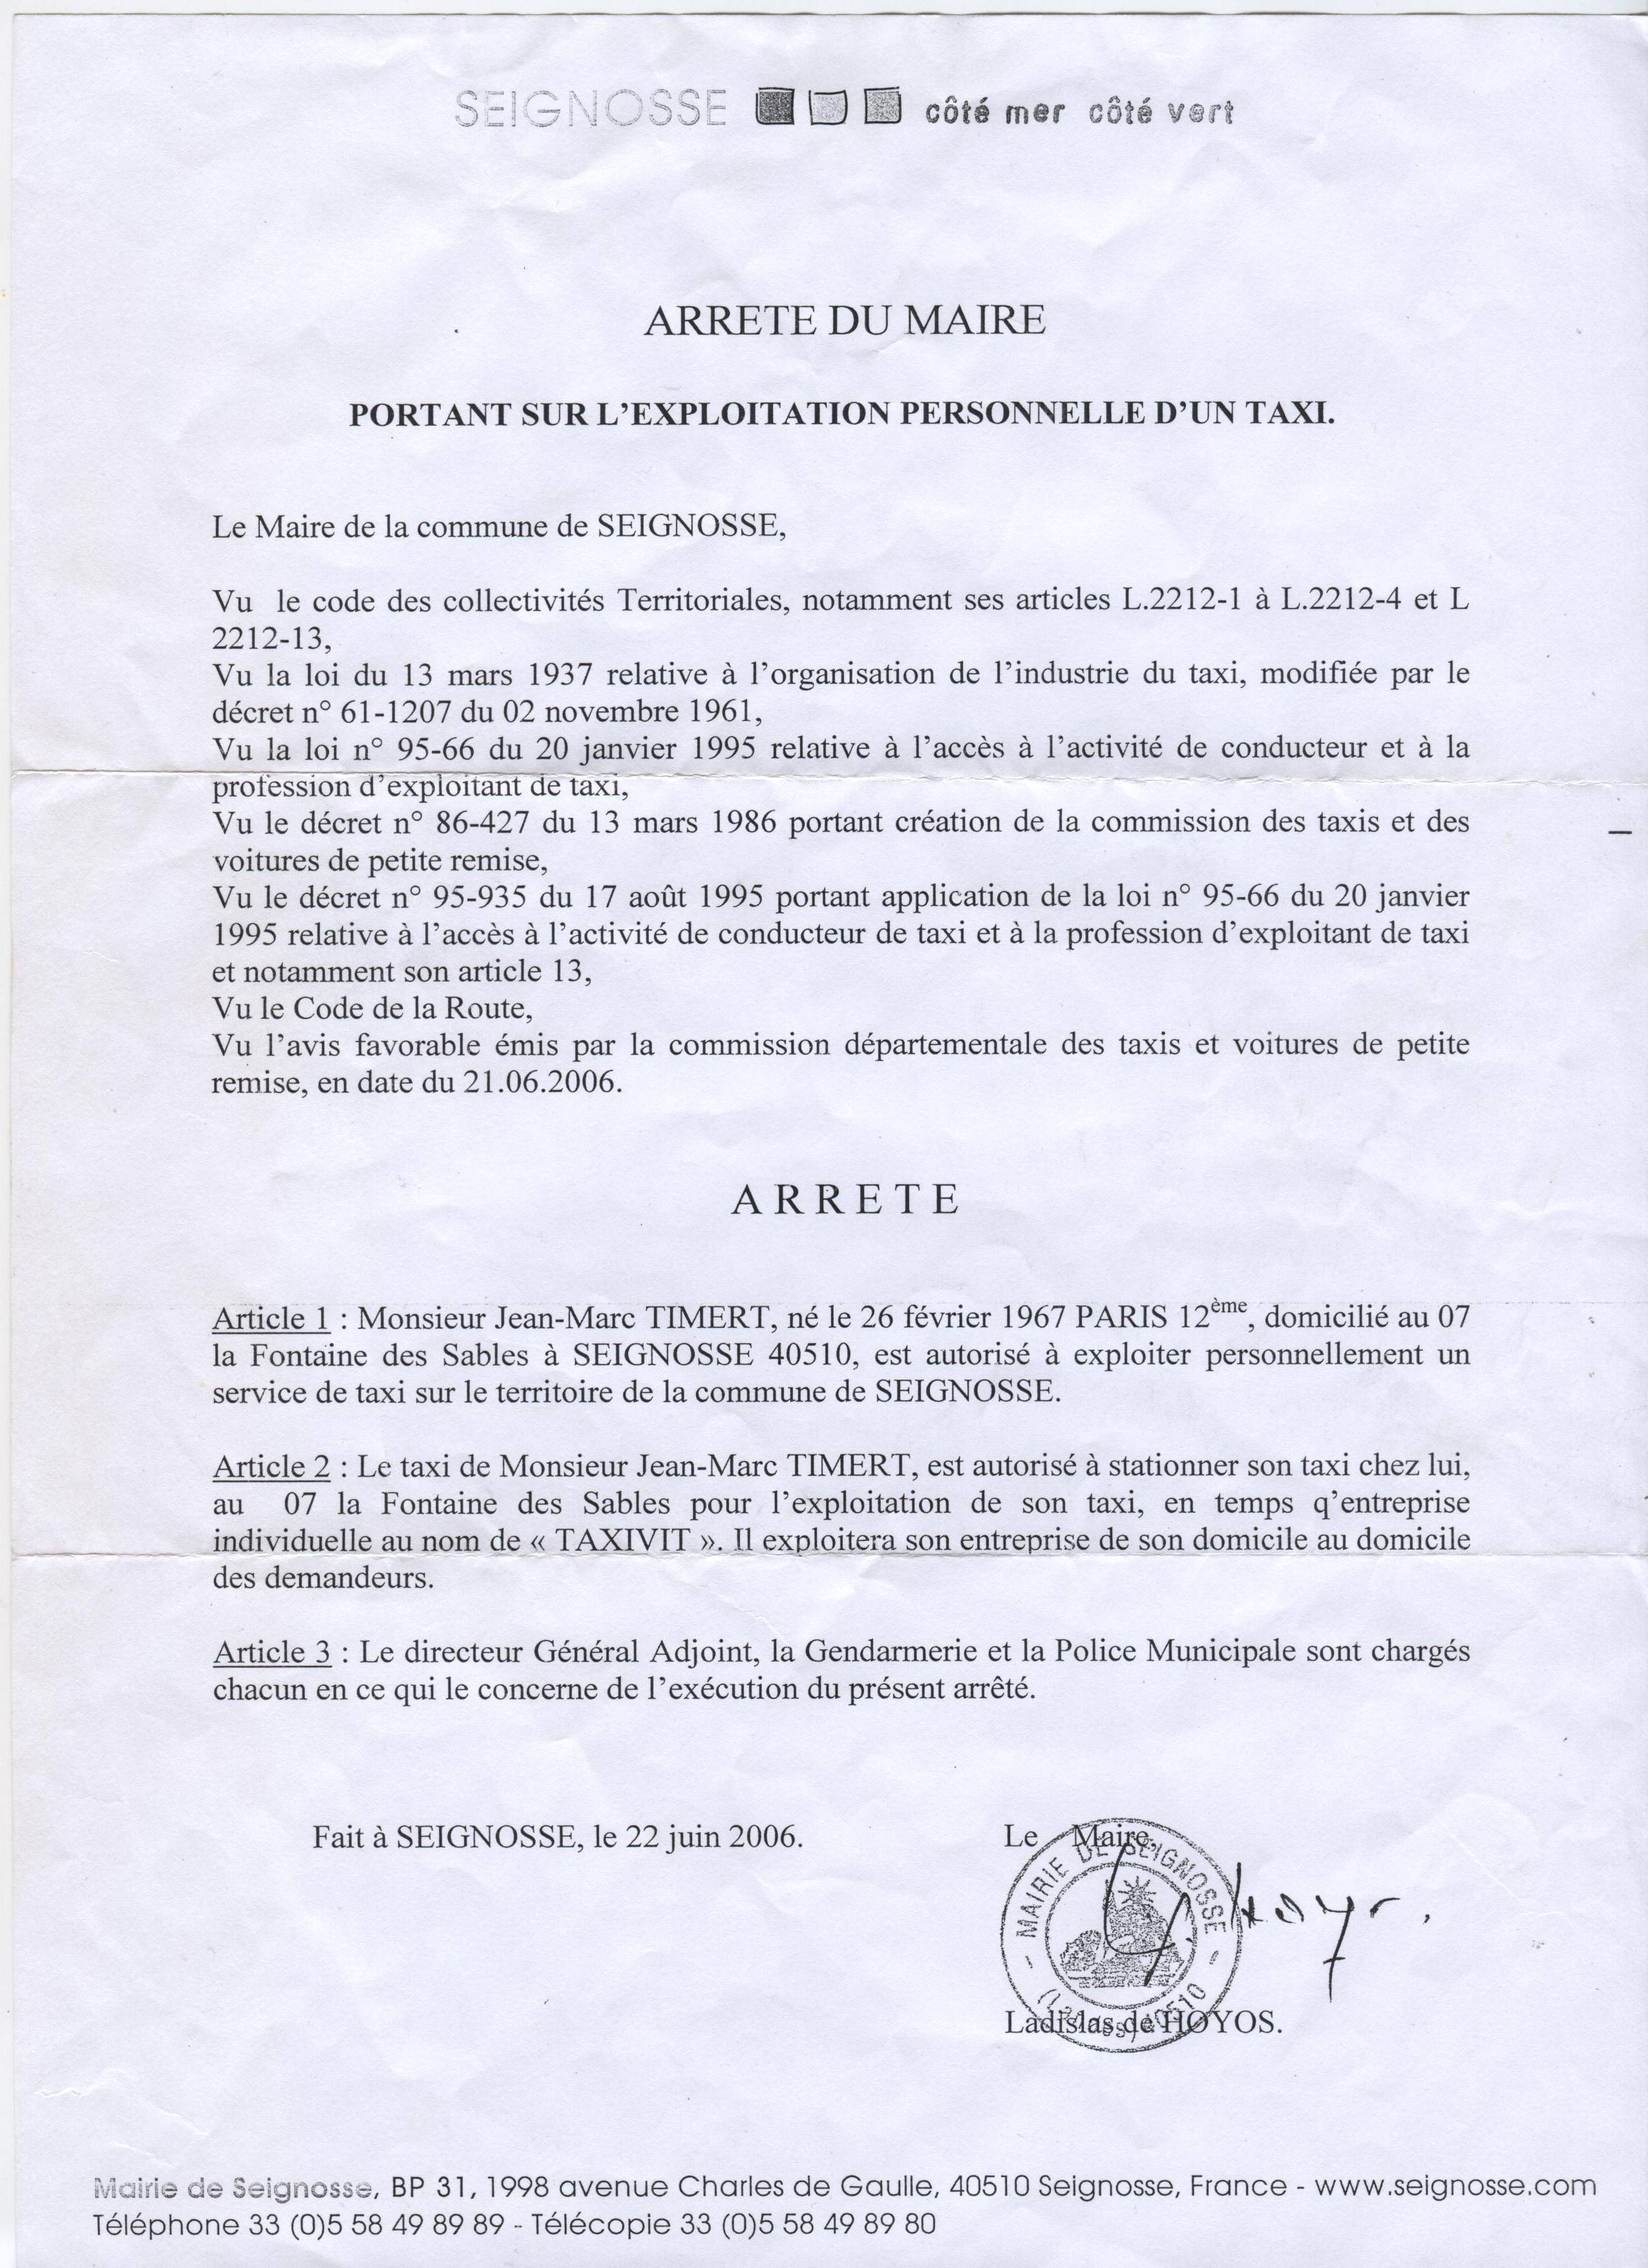 TAXIVIT transport licence